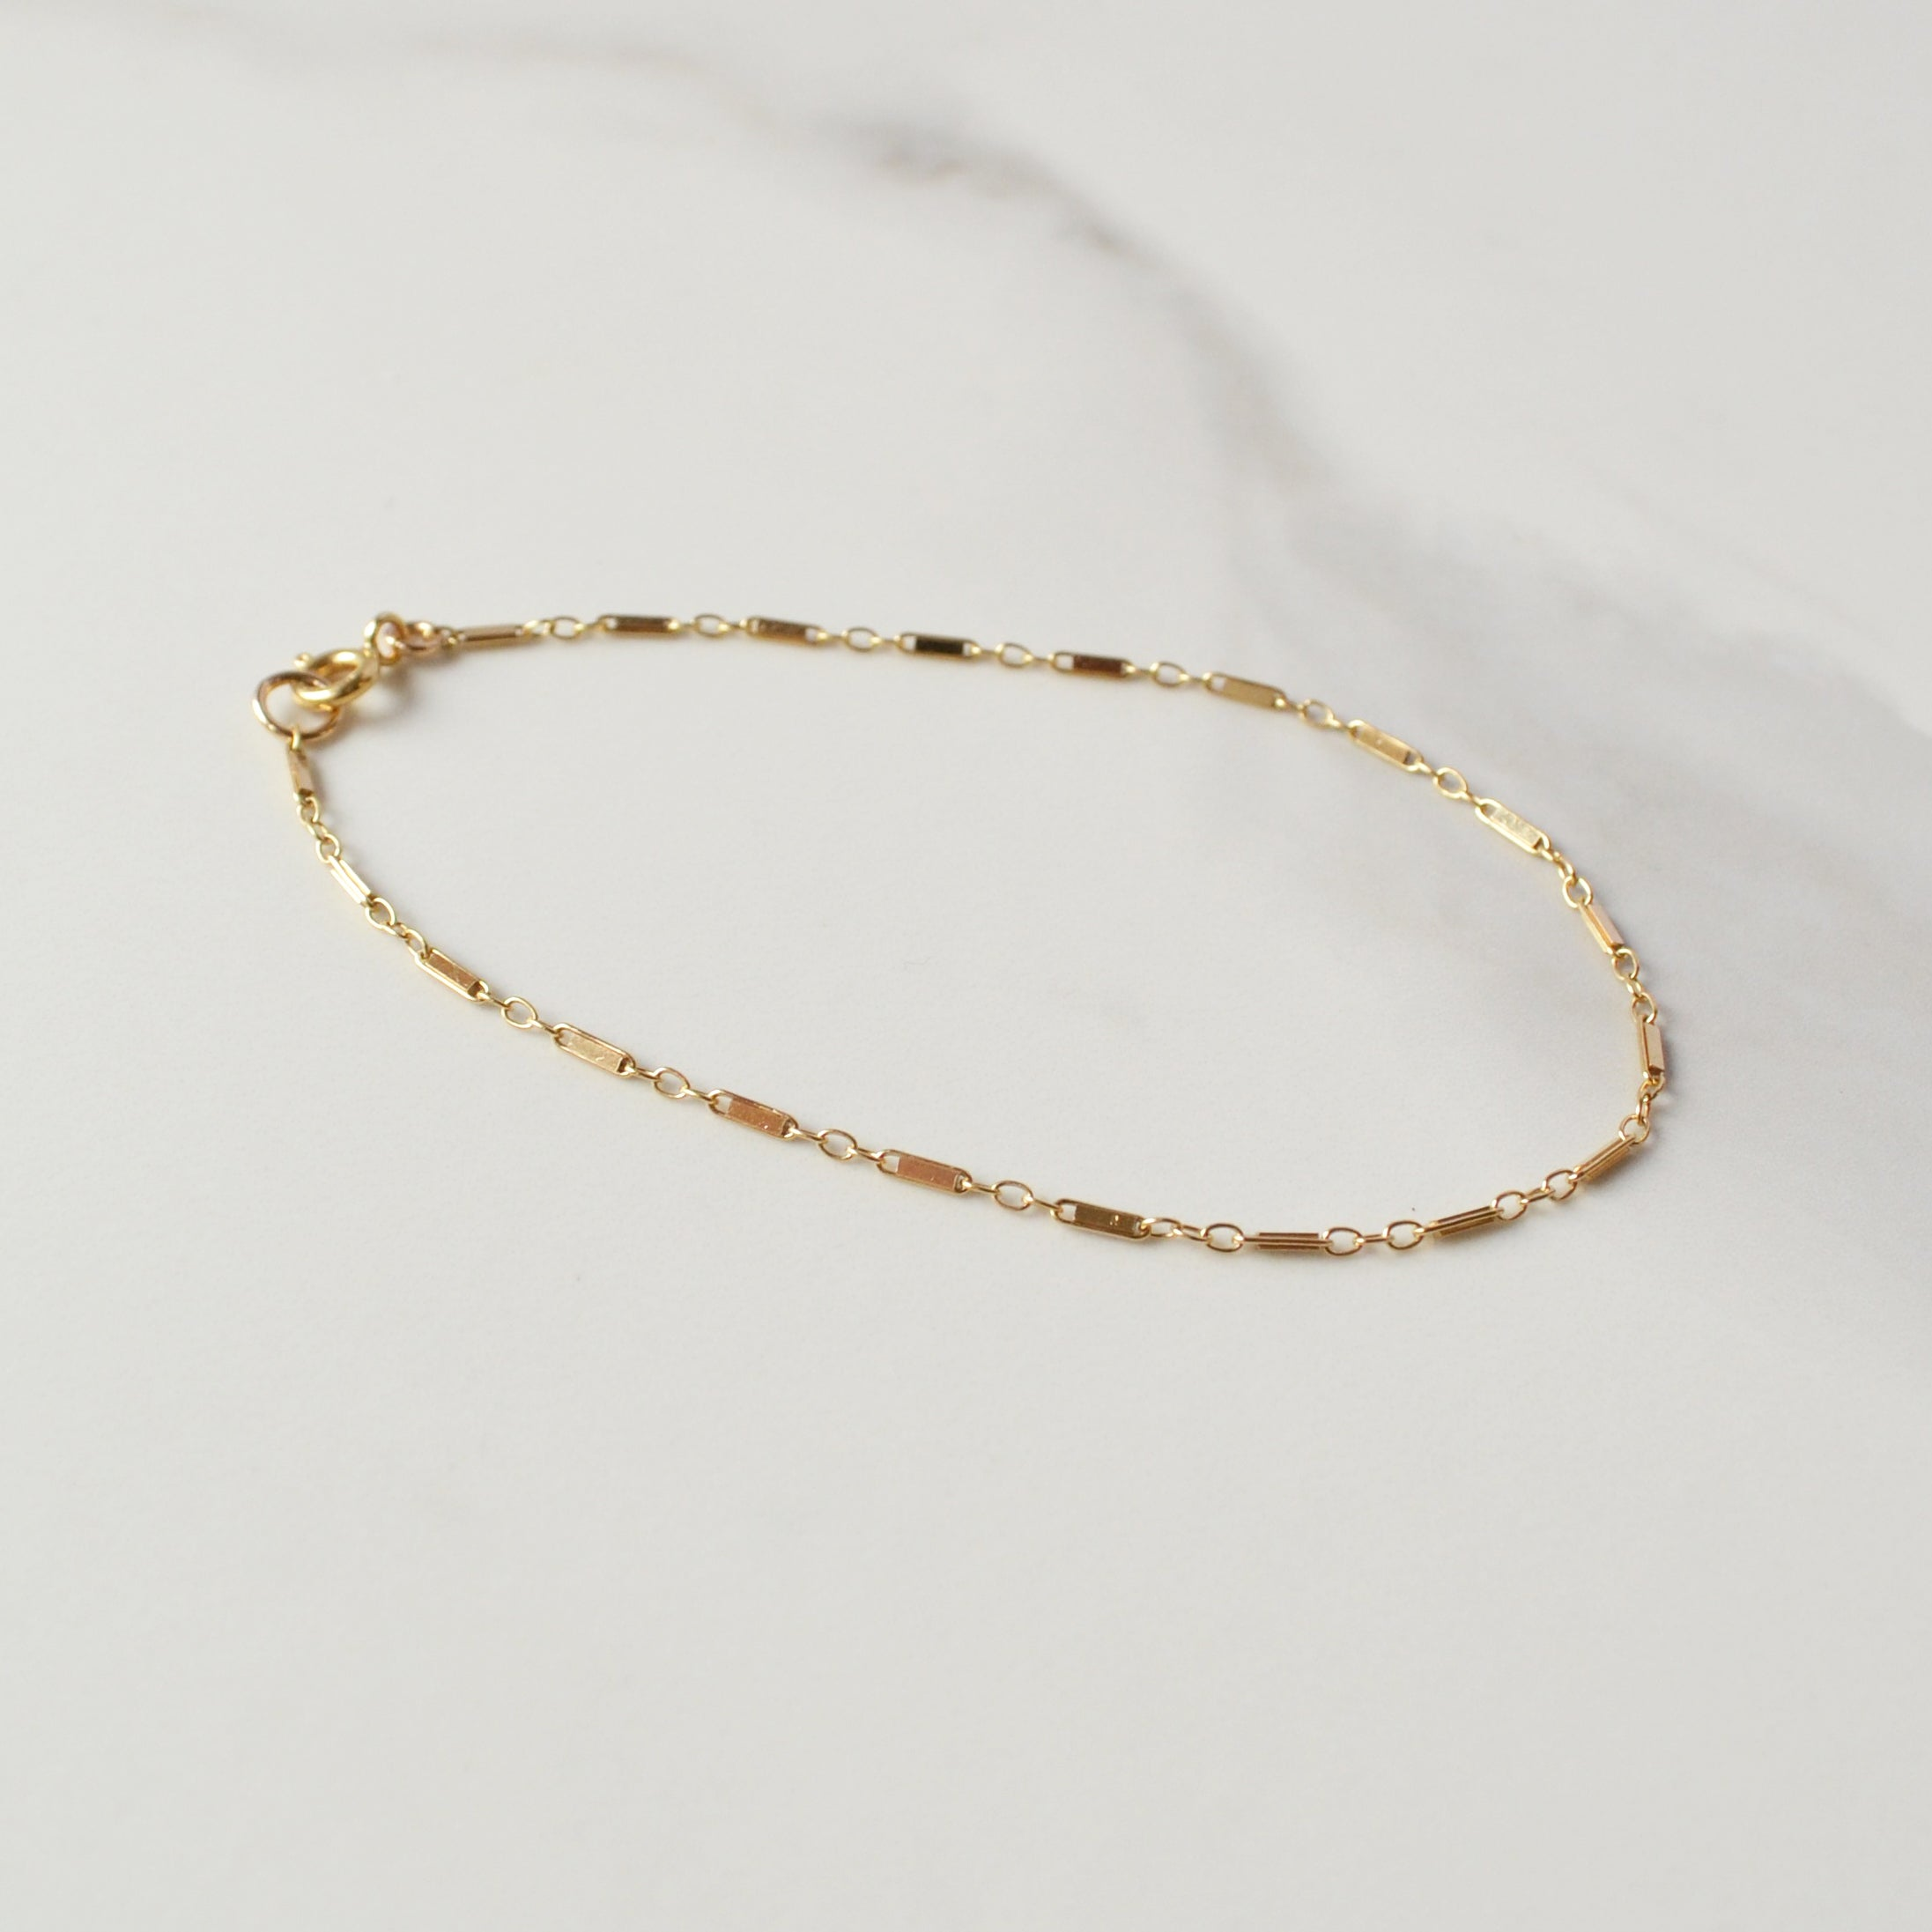 Bar Chain Bracelet, Gold or Silver